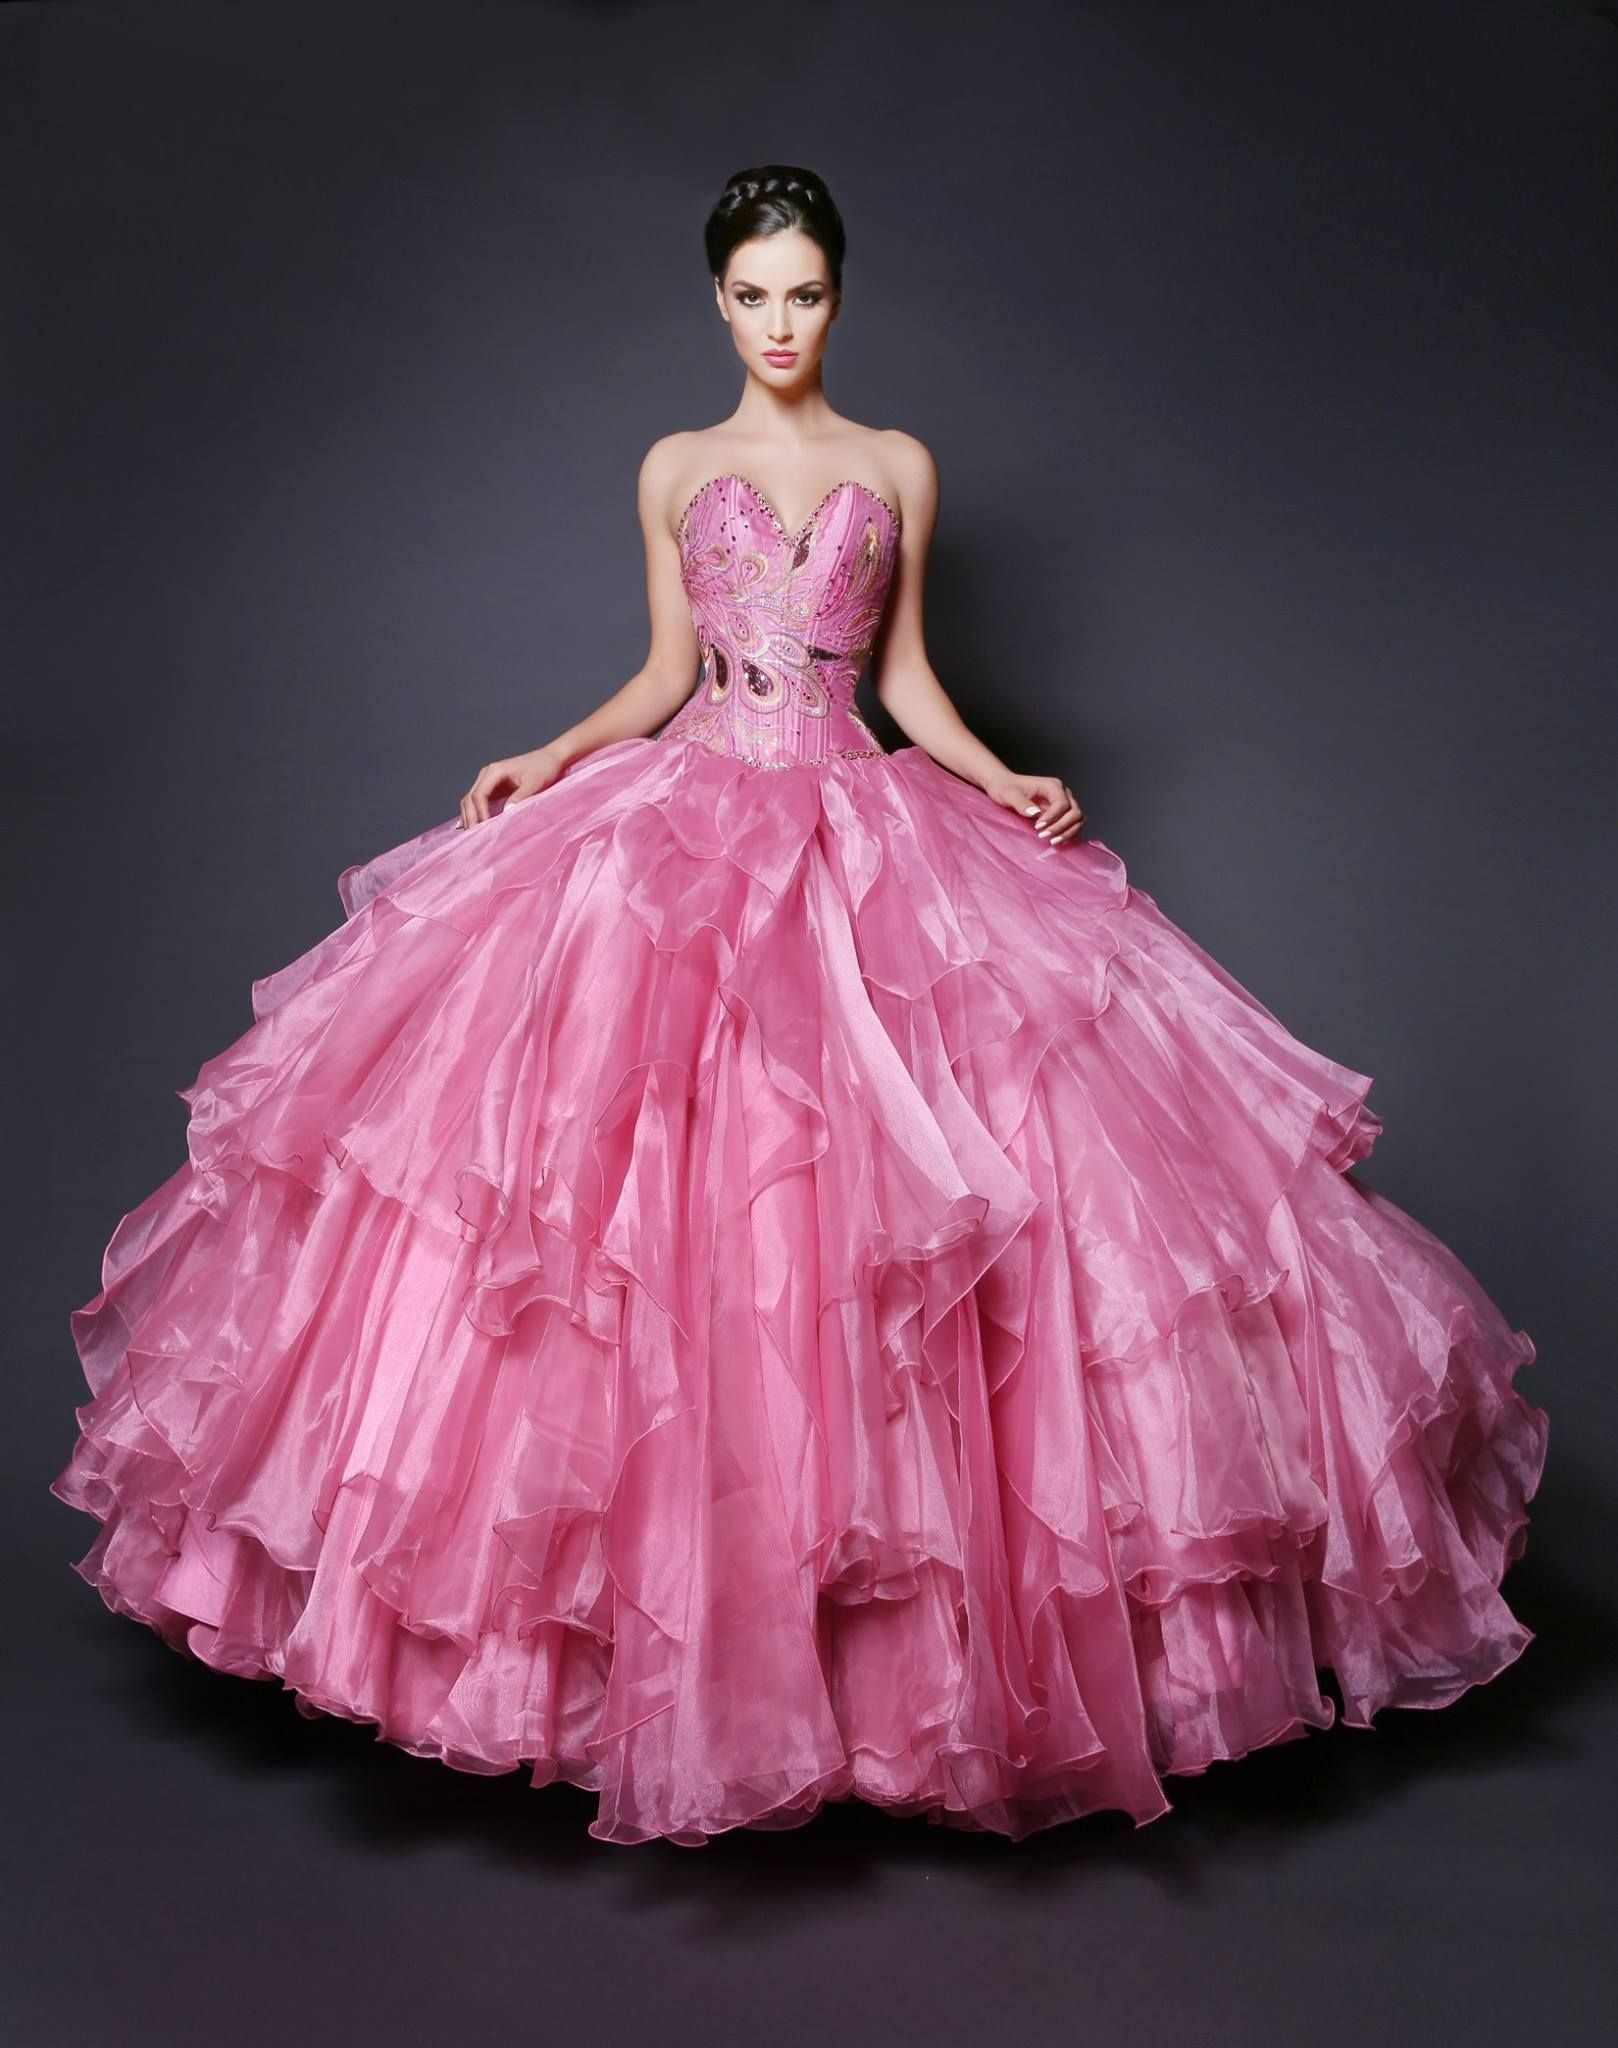 Nice Barbie Gowns For Kids Crest - Wedding and flowers ispiration ...